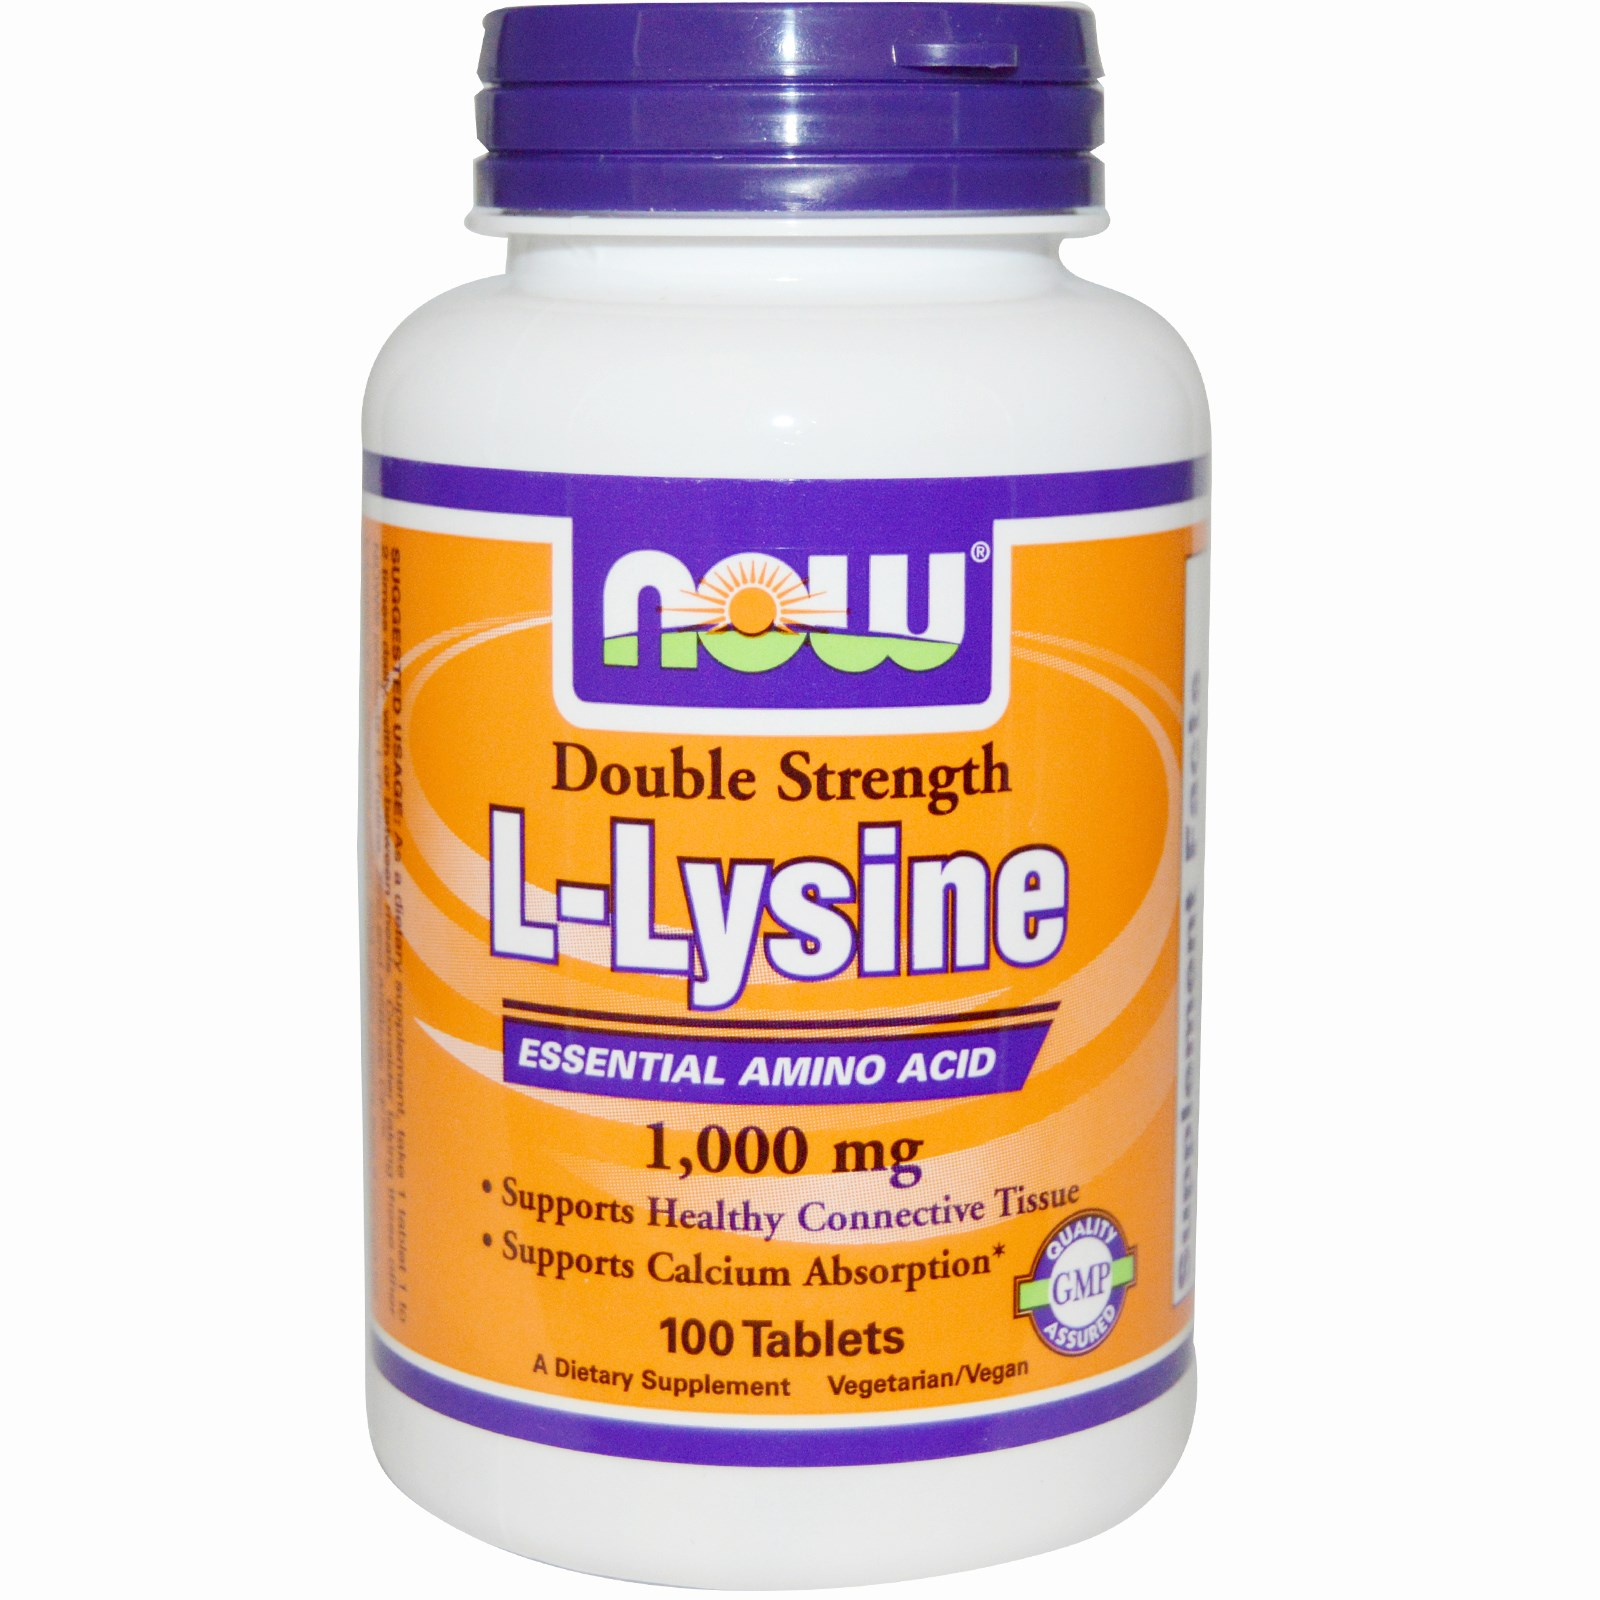 Image of Now Foods, L-Lysine, 1,000 mg, 100 Tablets 0733739001139